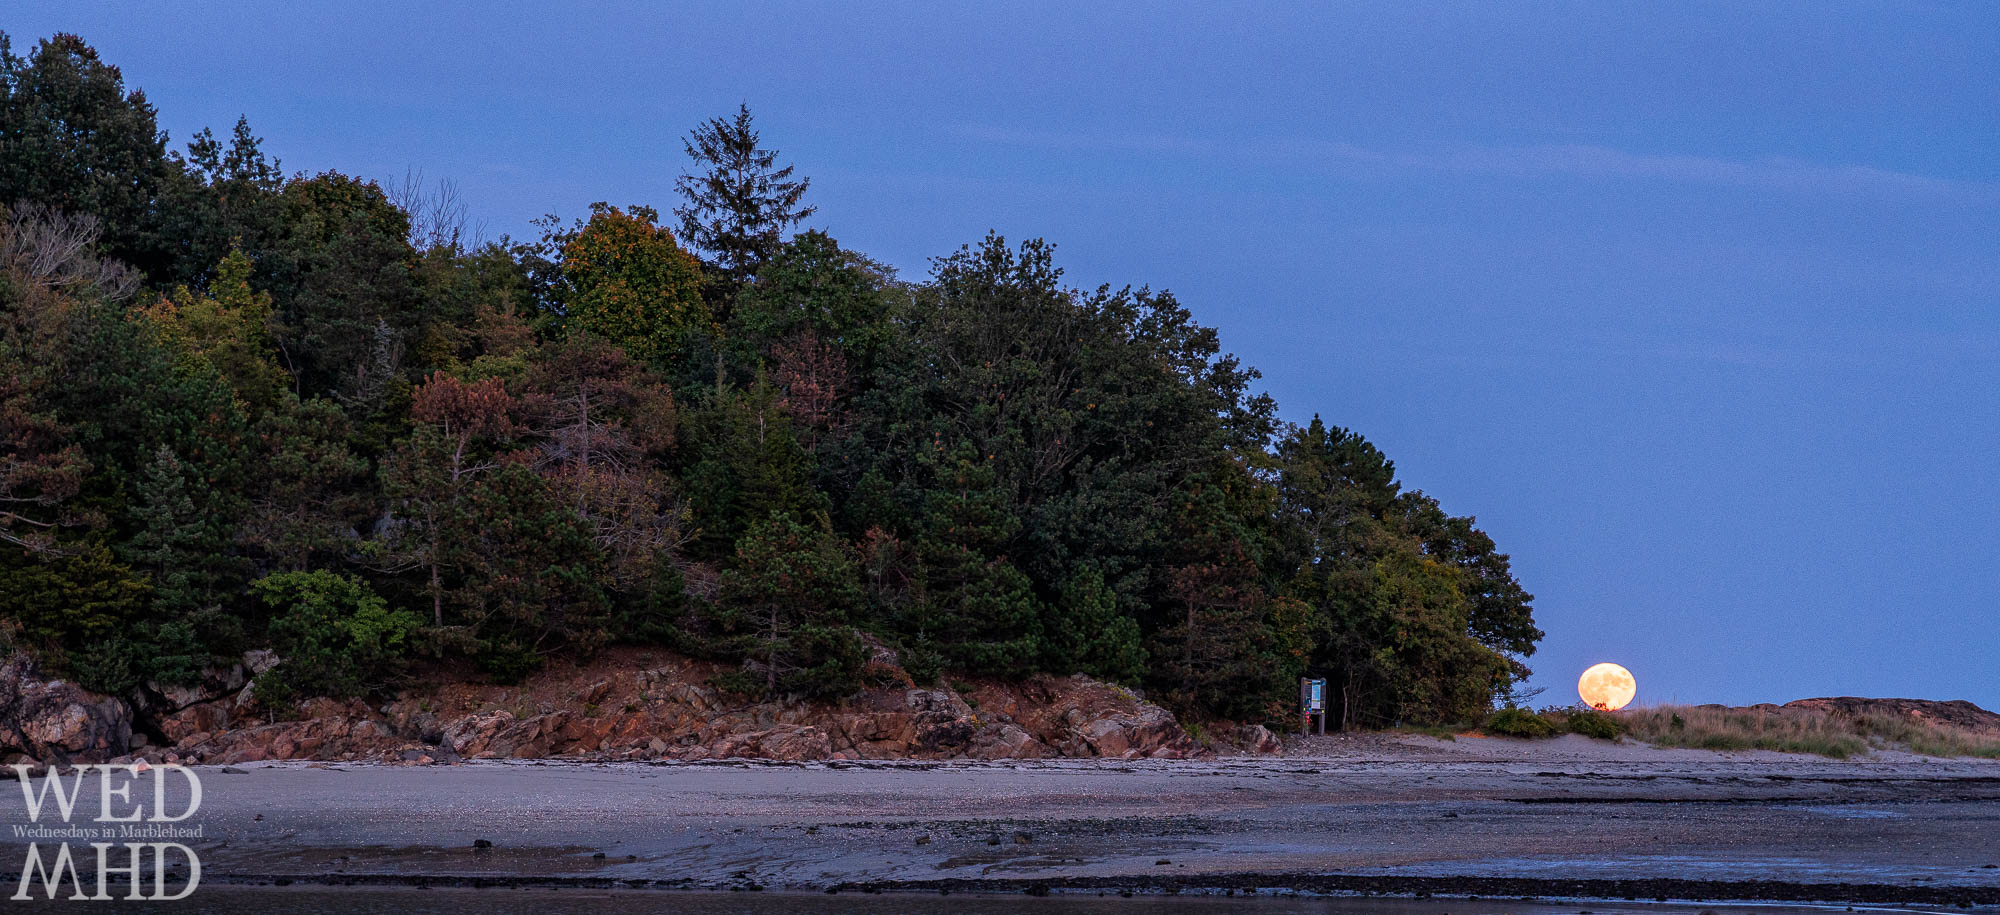 The full Hunter's Moon rises over Brown's Island at low tide with hints of foliage showing in the canopy